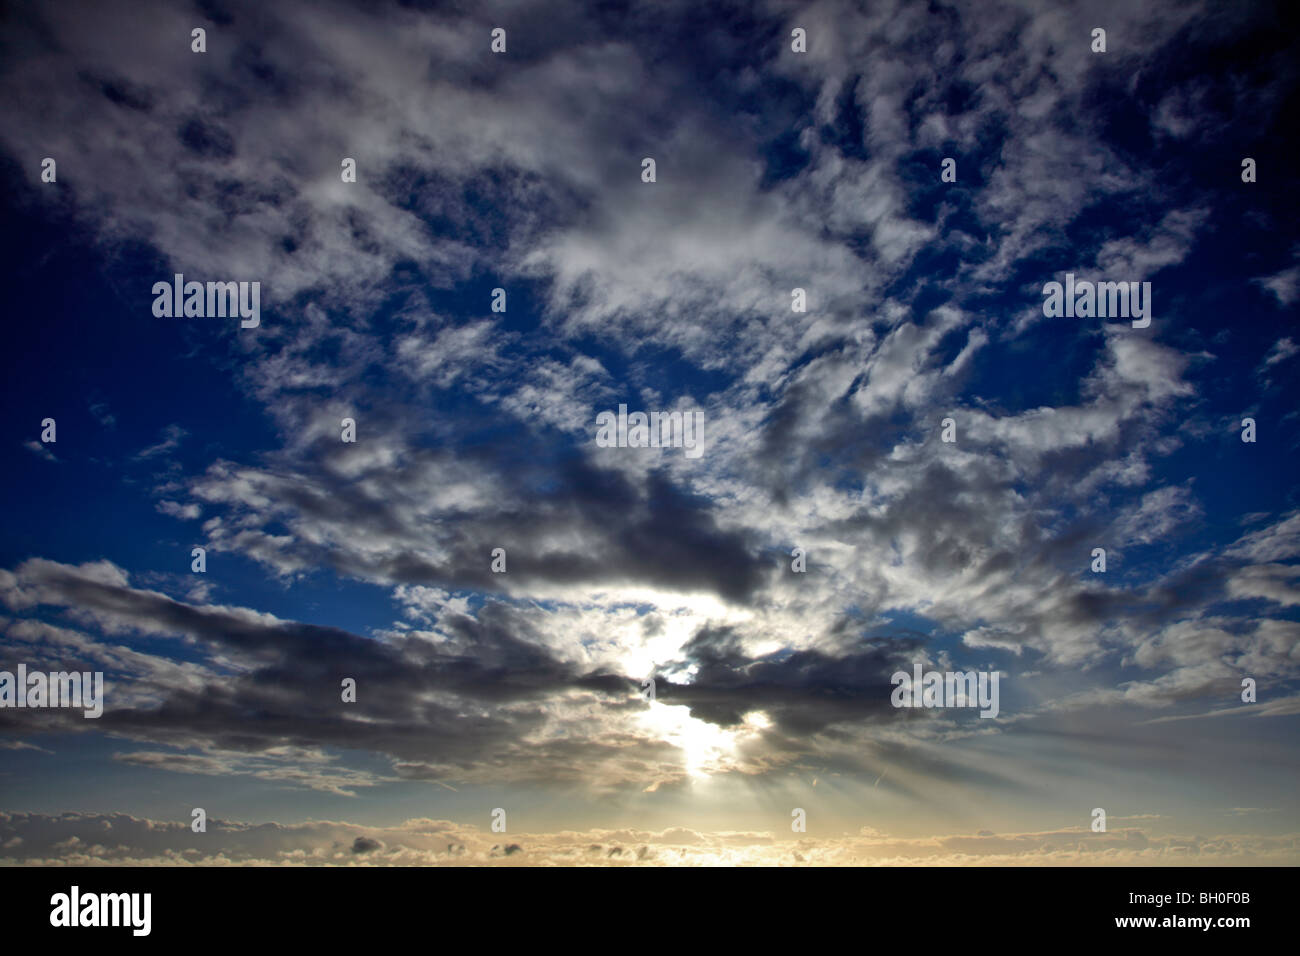 Altocumulus stratiformis Clouds over English Channel UK - Stock Image